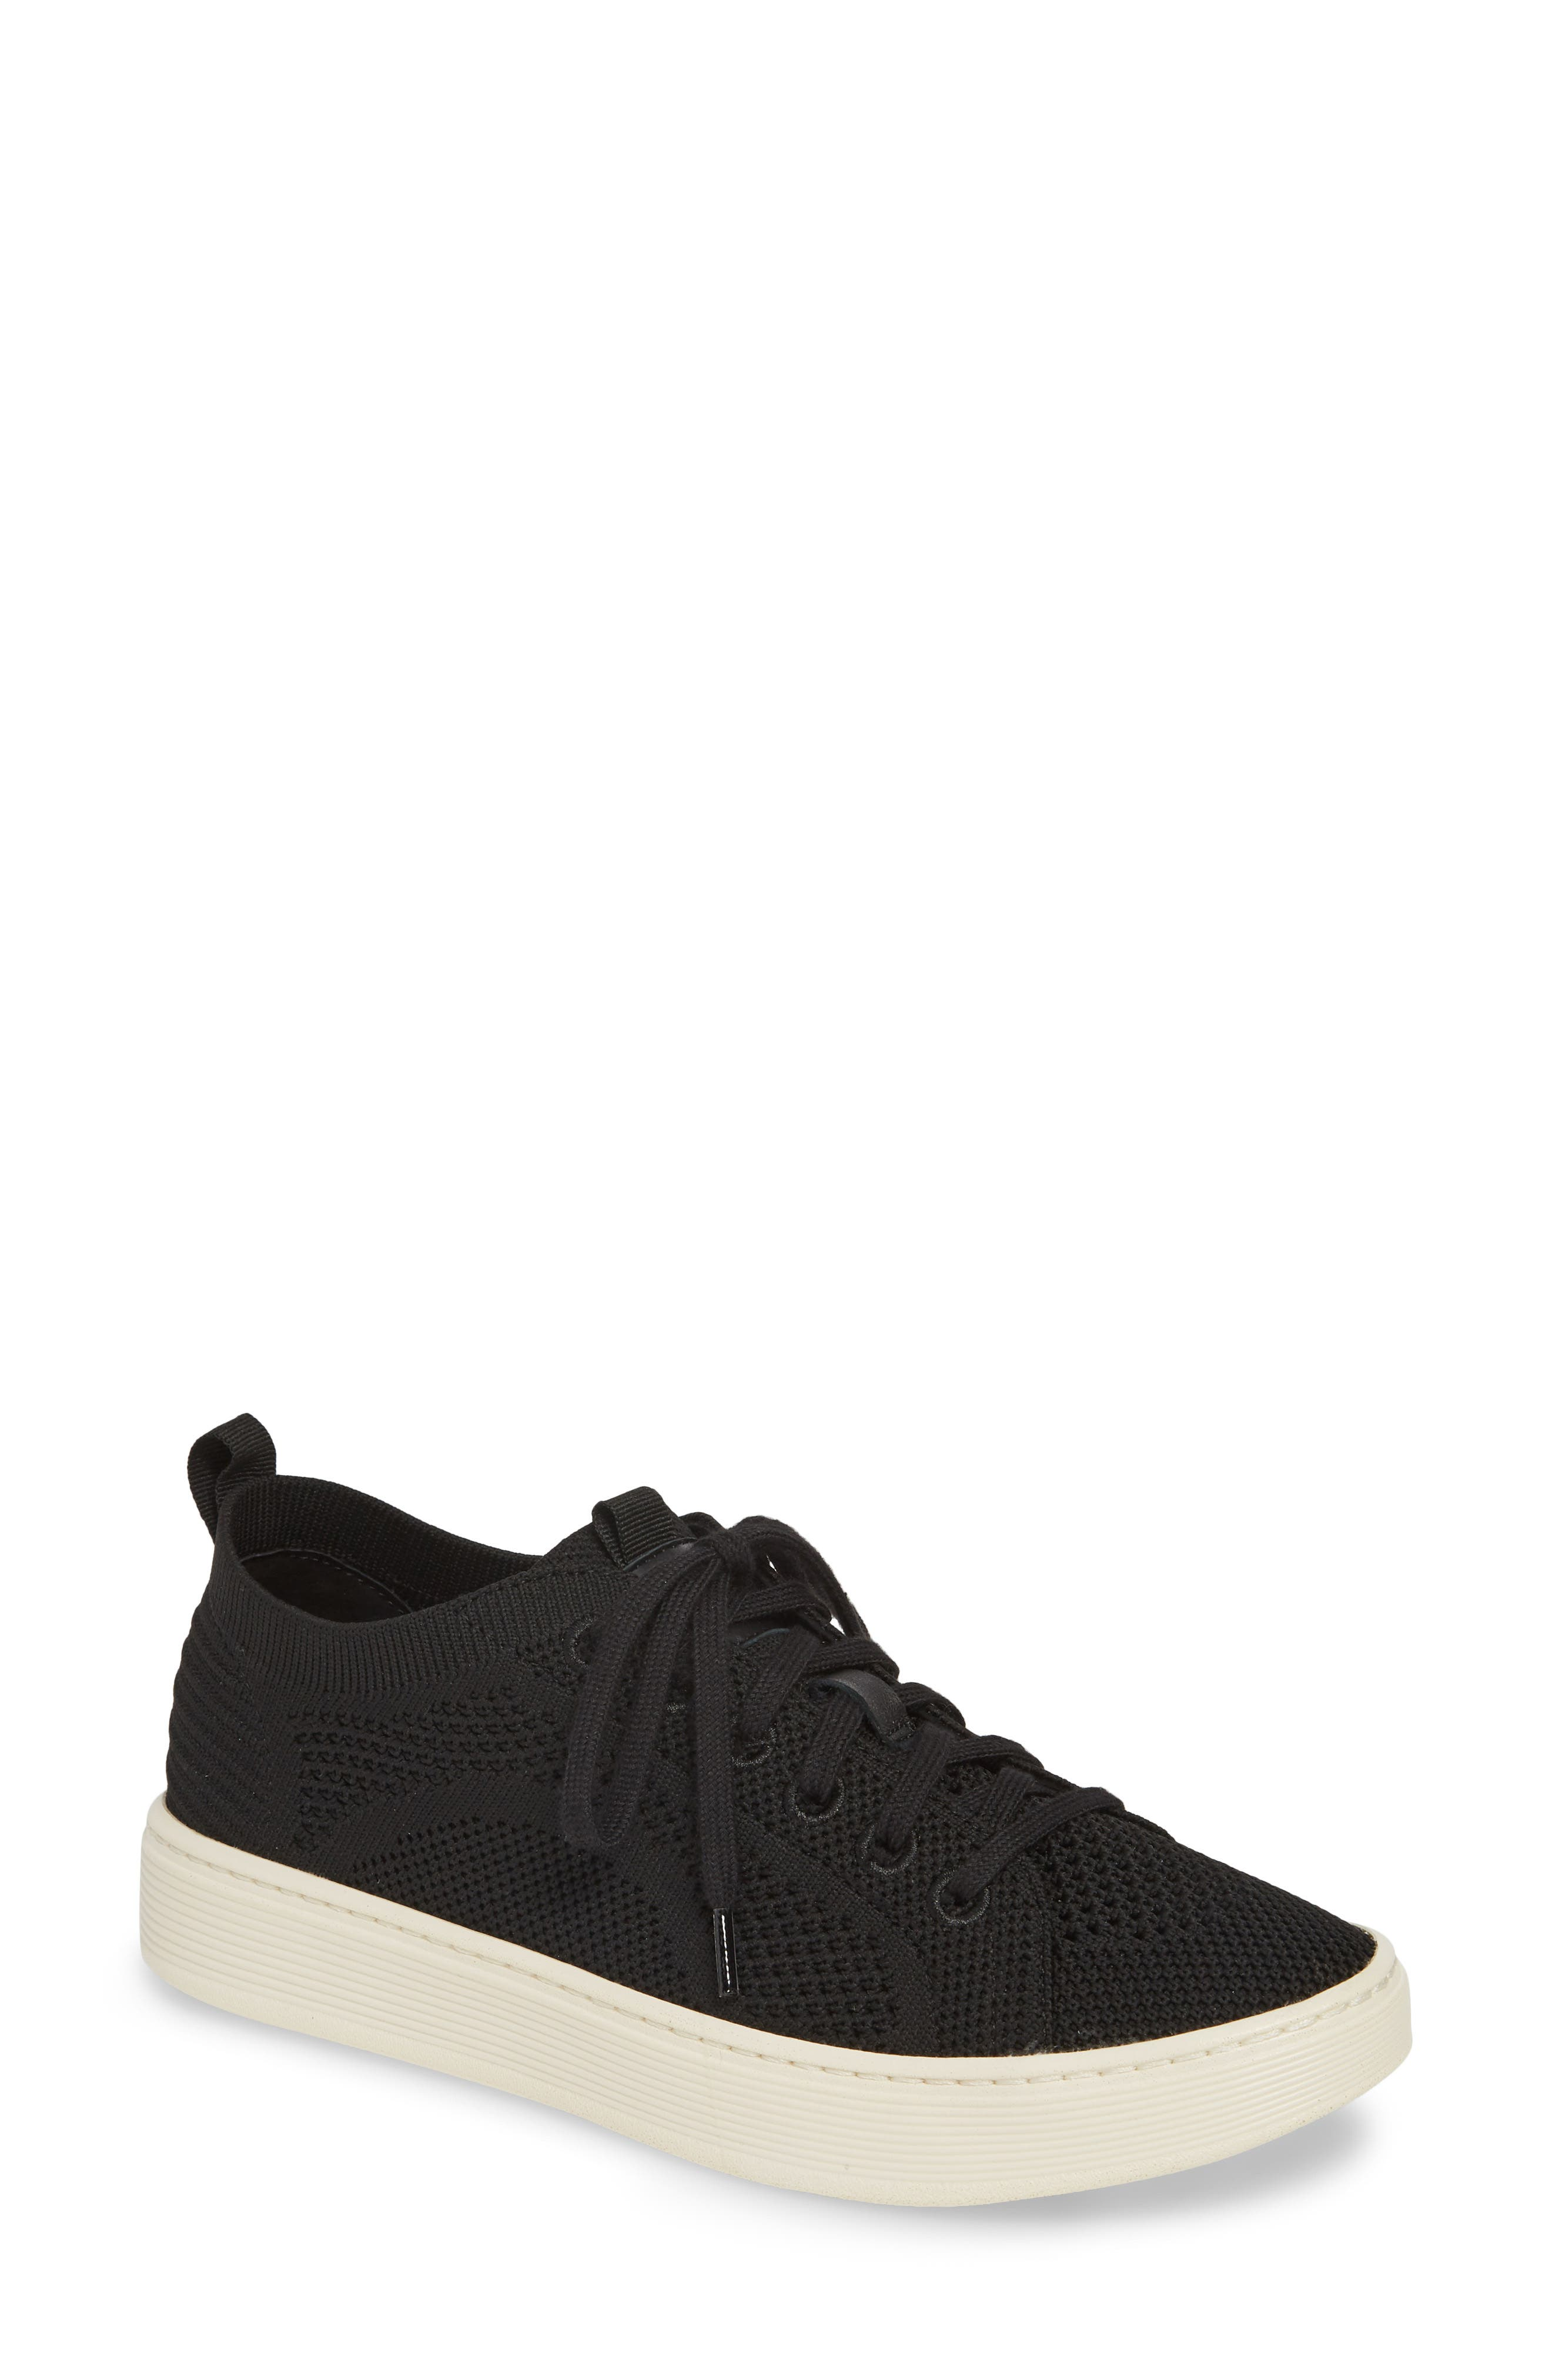 Sofft Somers Knit Sneaker- Black